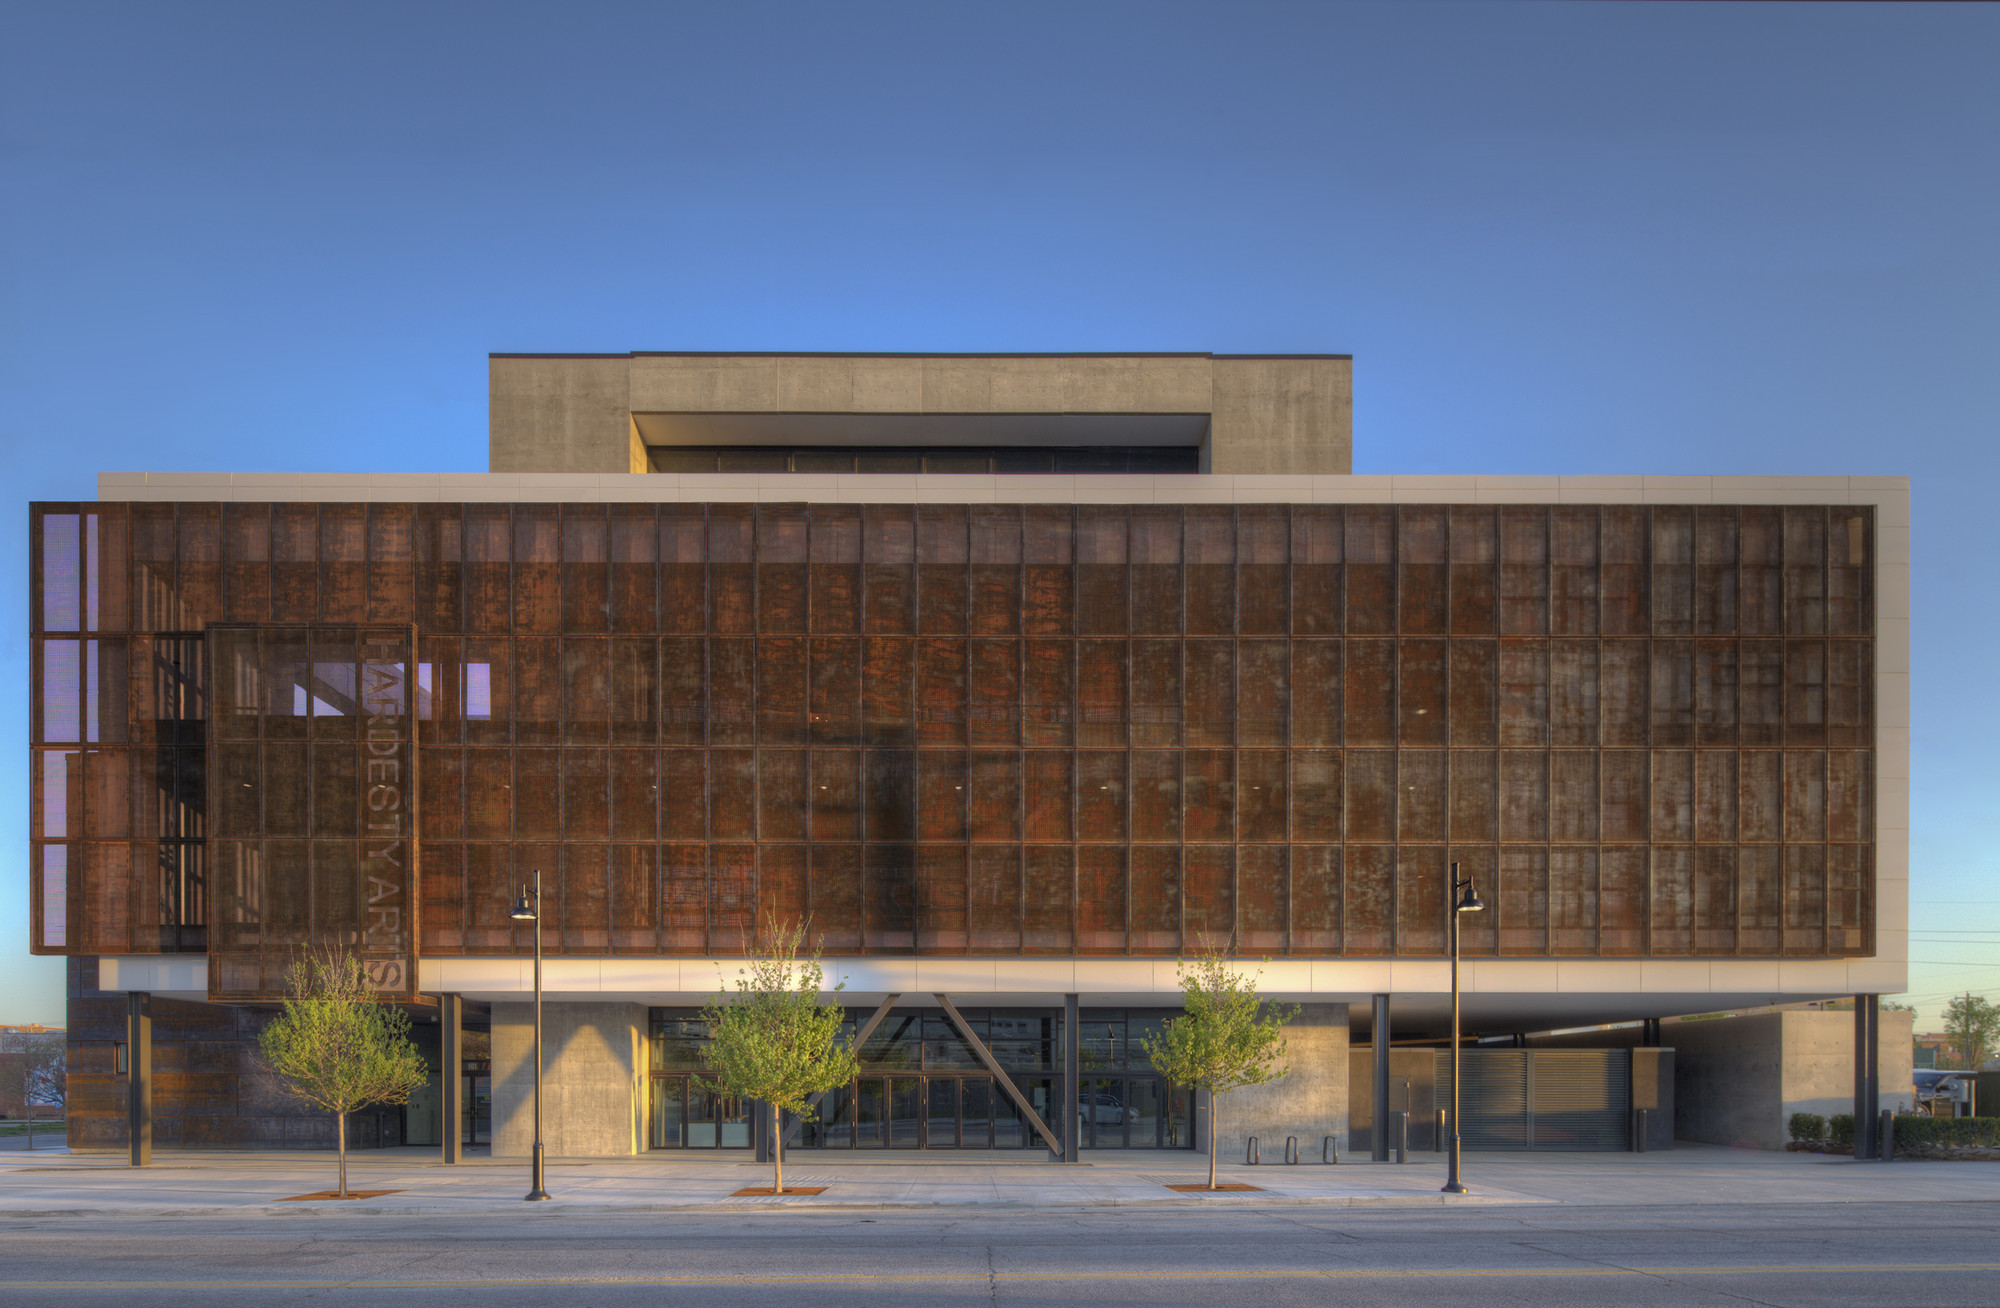 Centro de Artes Hardesty / Selser Schaefer Architects, © Ralph Cole Photography